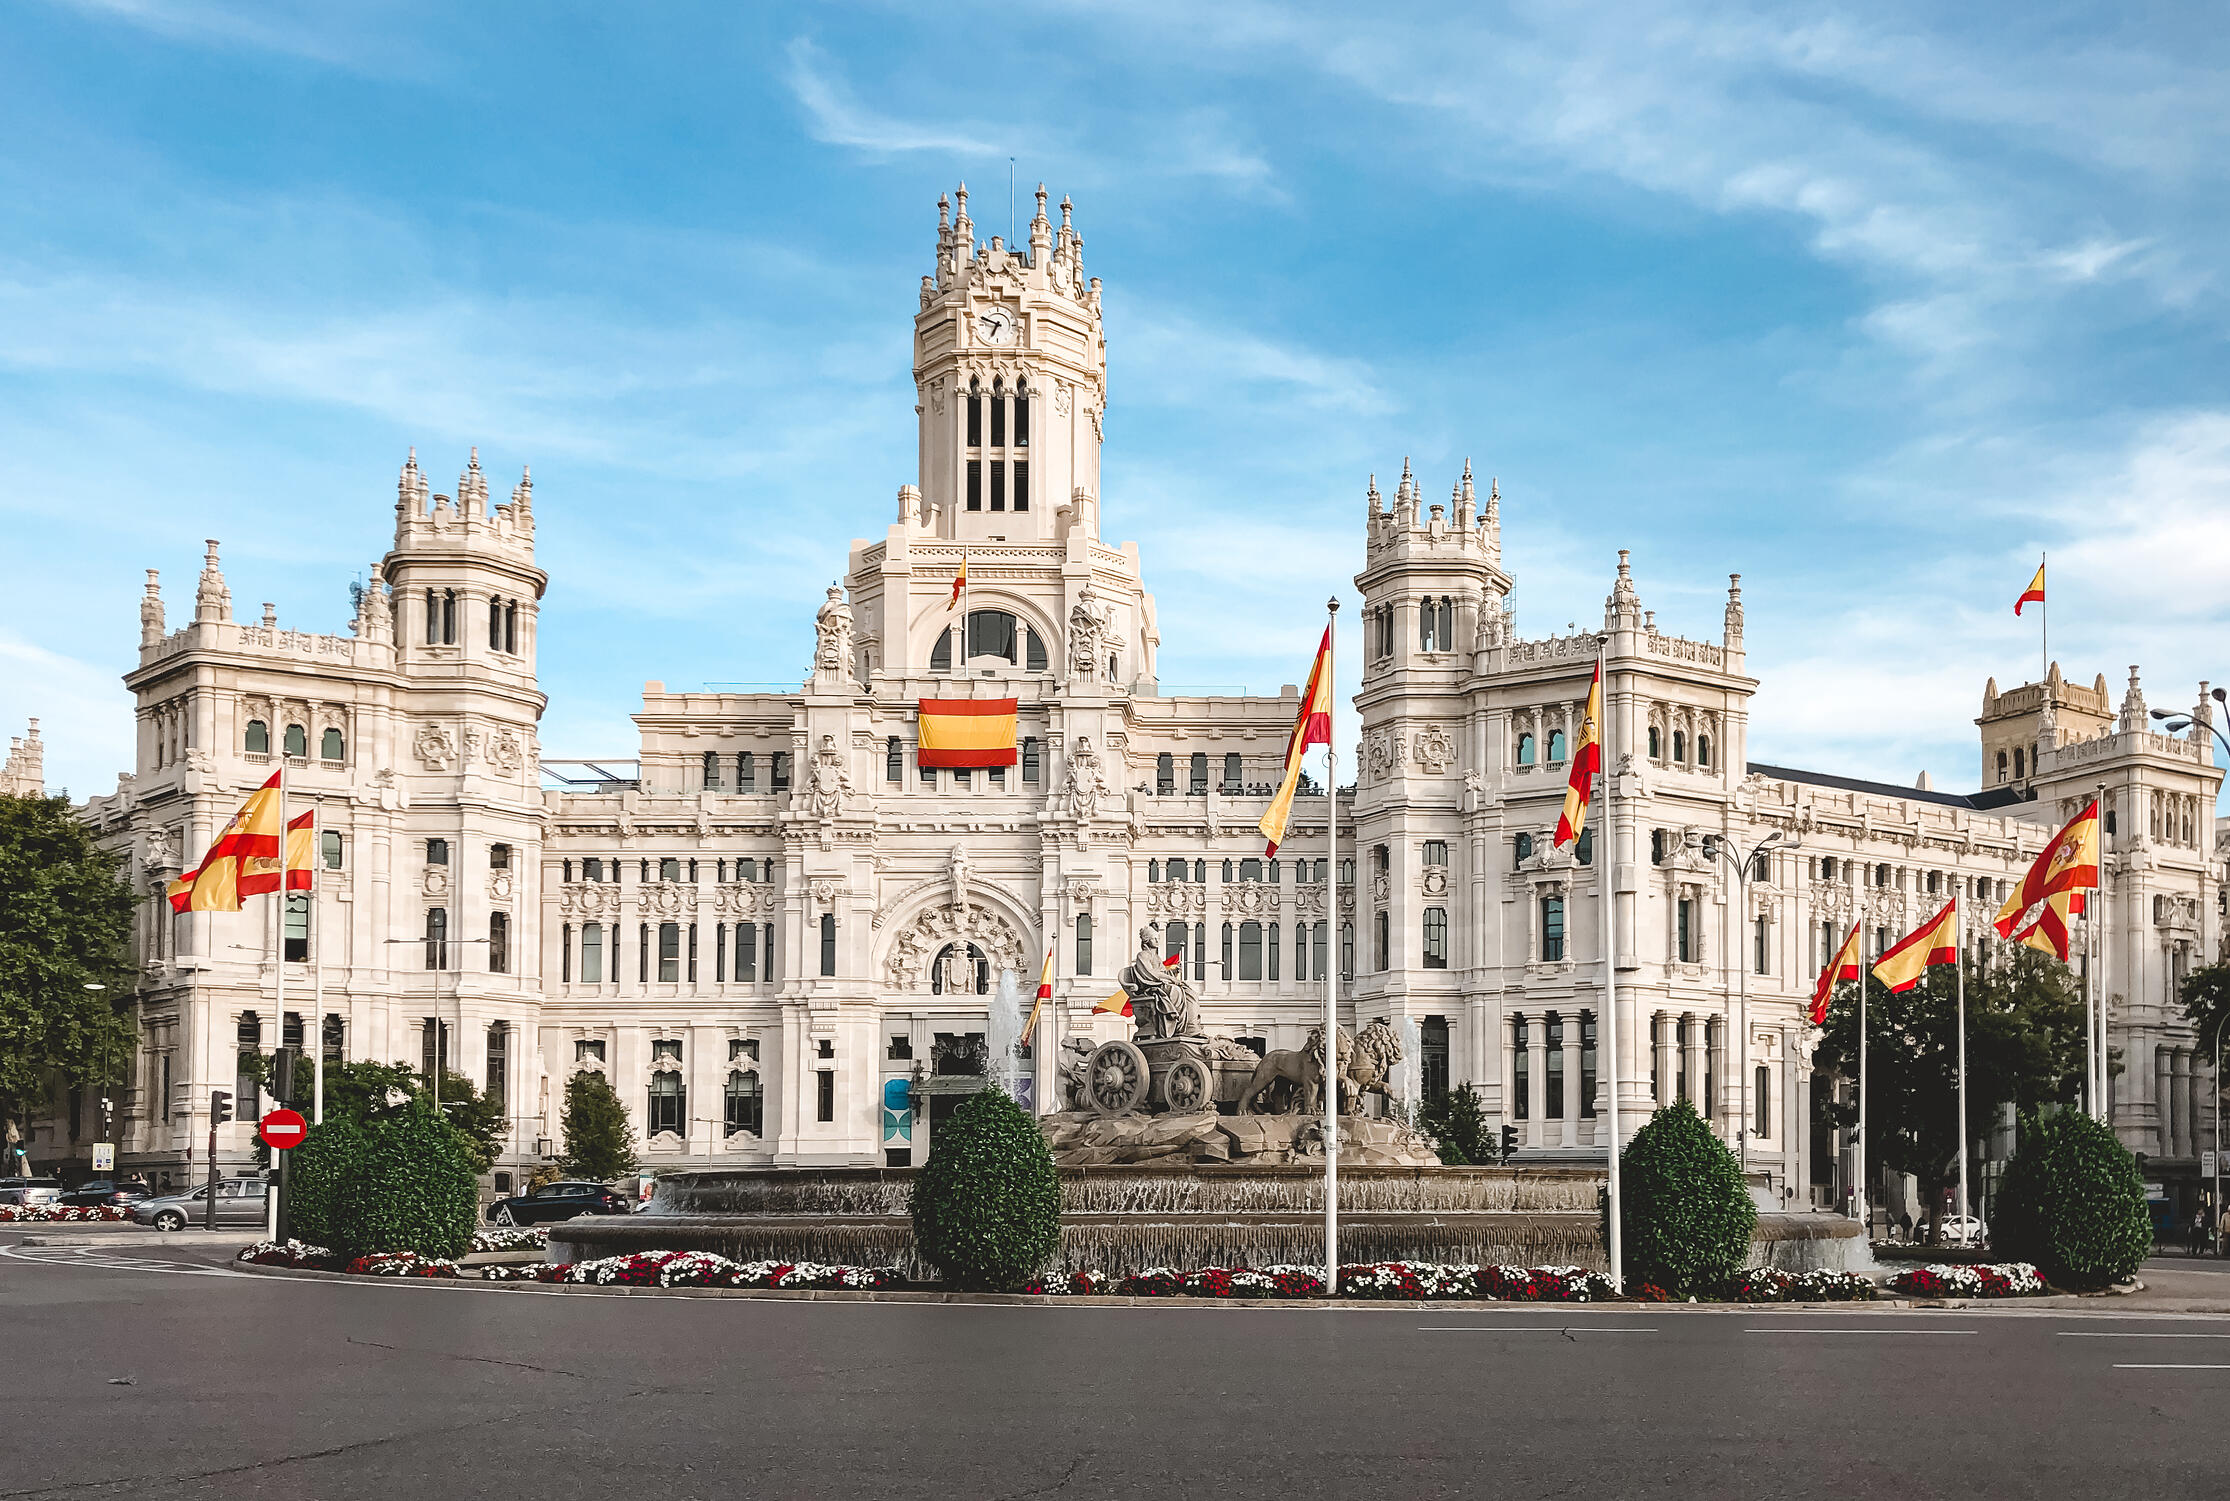 muslim-travel-guide-Madrid-Spain-things-to-do-plaza-de-cibeles